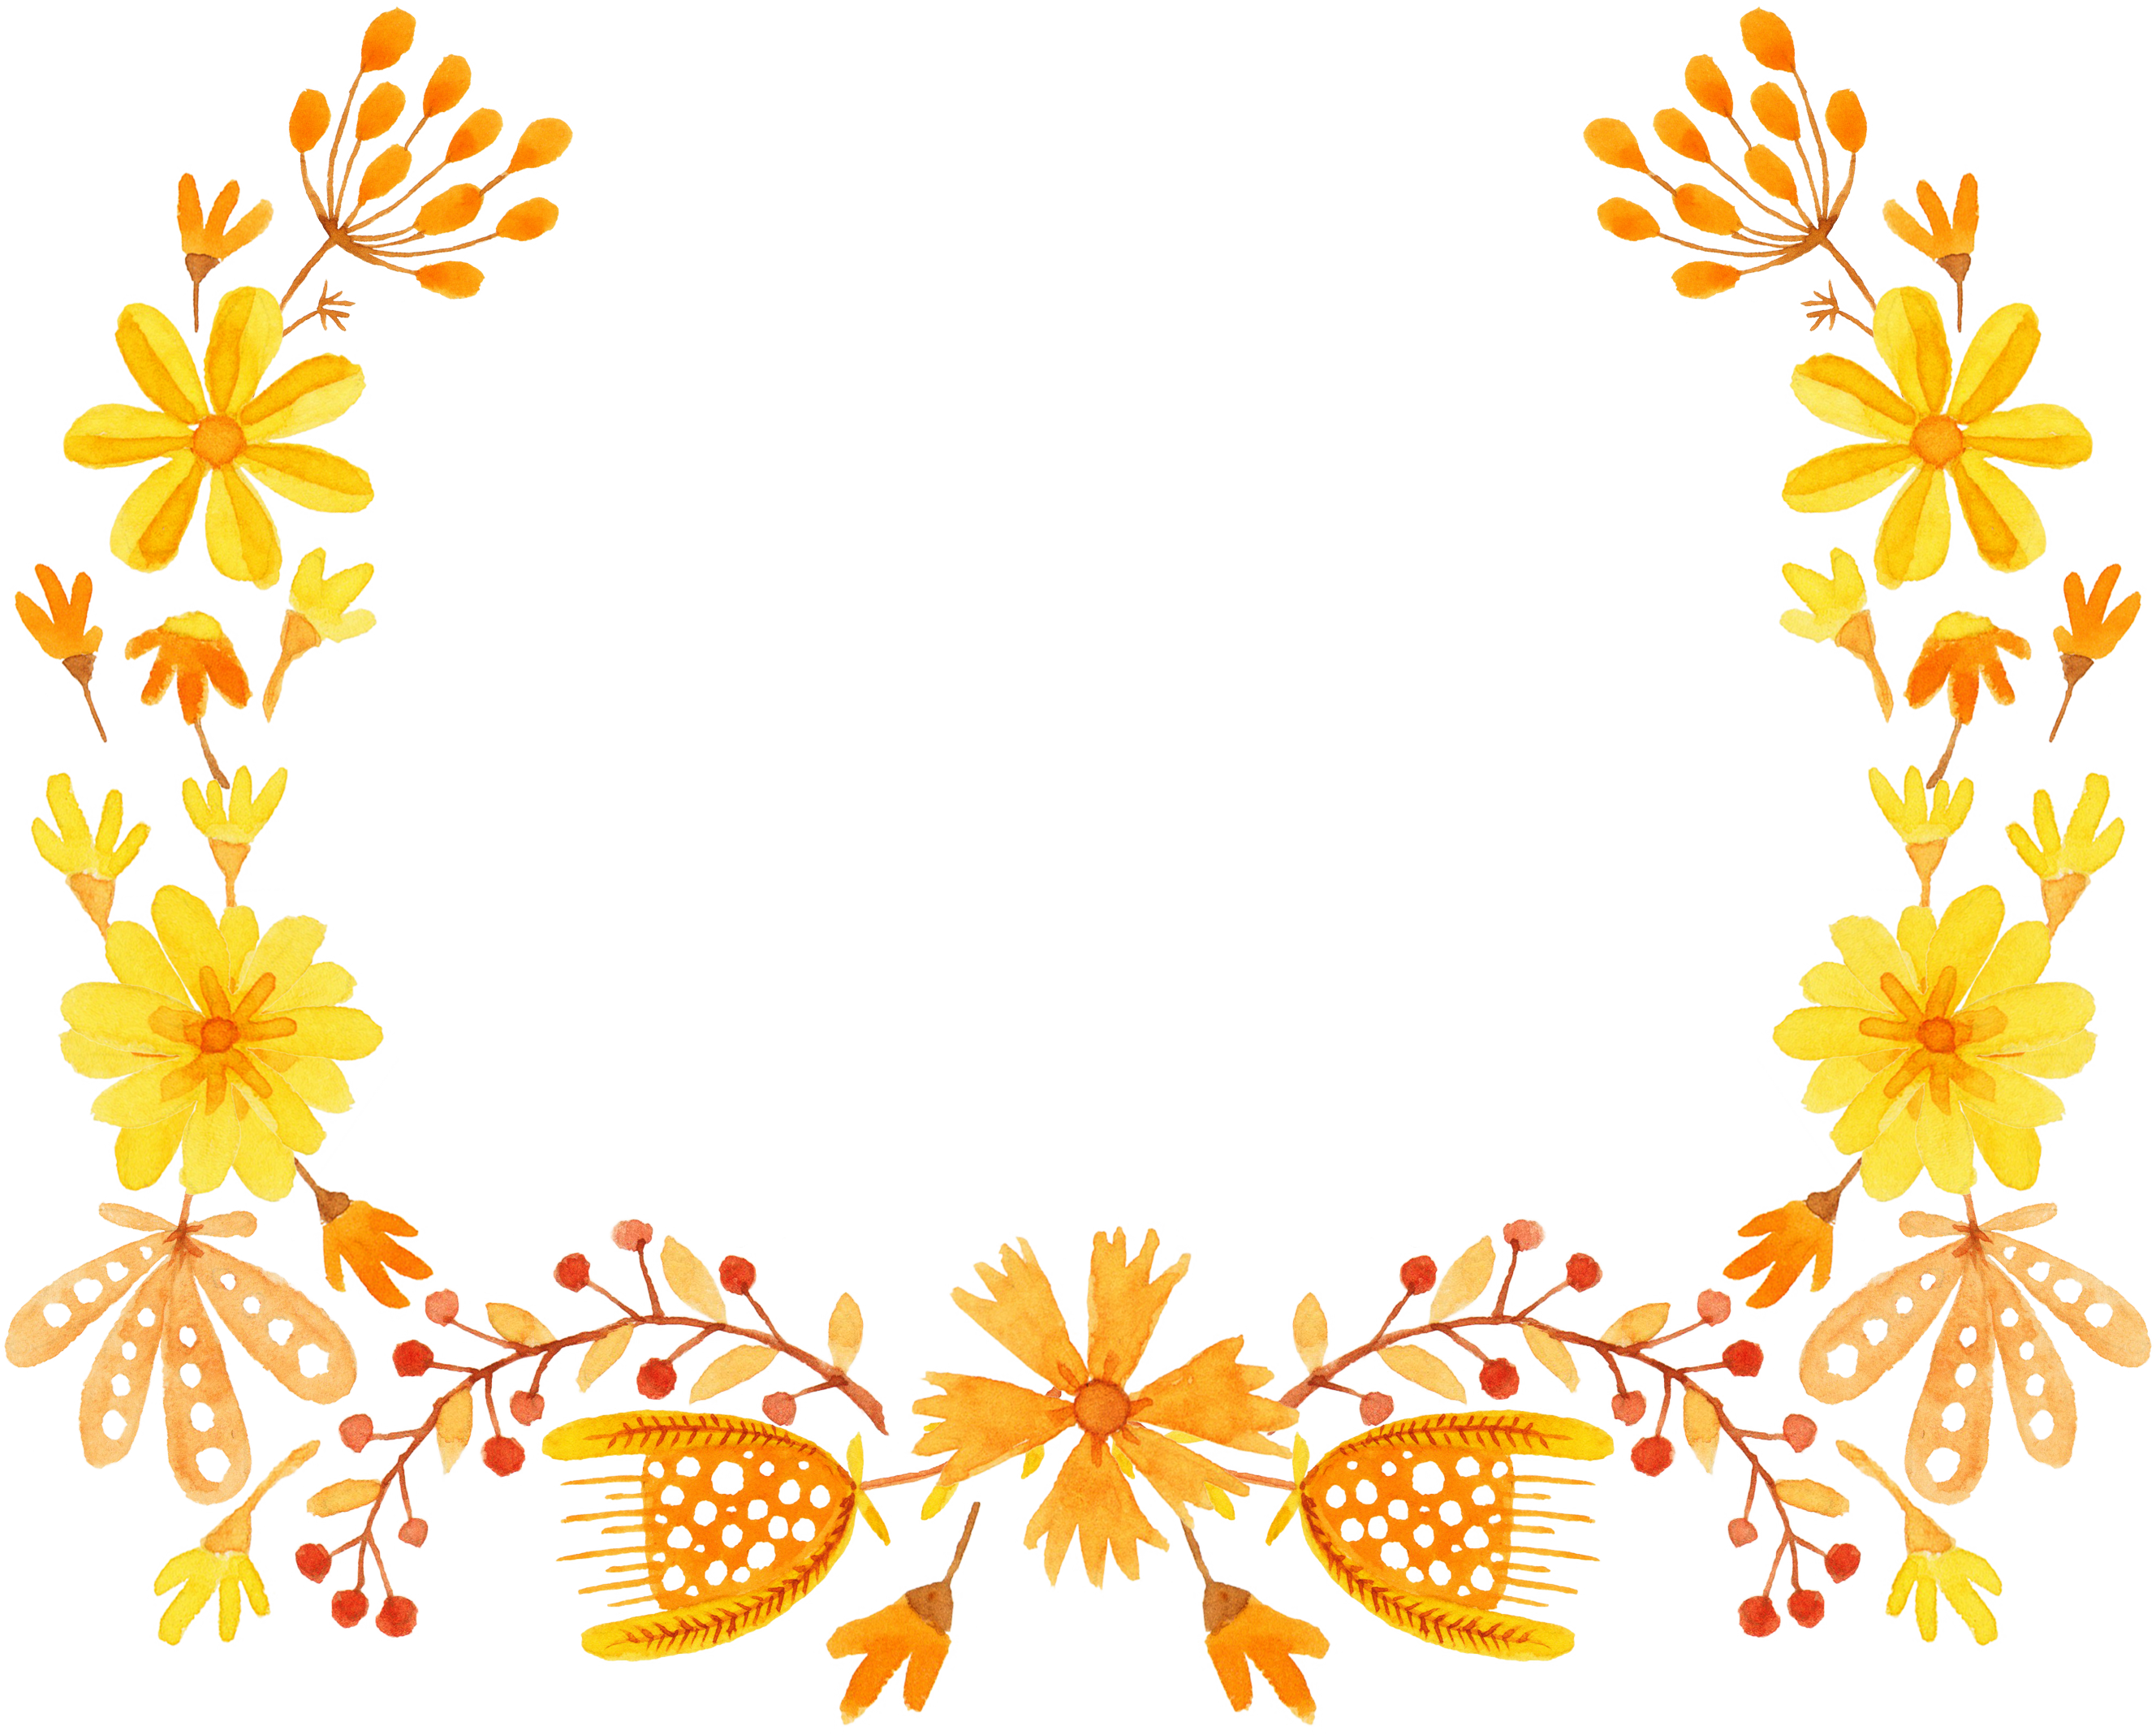 Orange flower border clipart black and white download Yellow Flower Semicircle Clip art - Semi-round yellow floral border ... black and white download